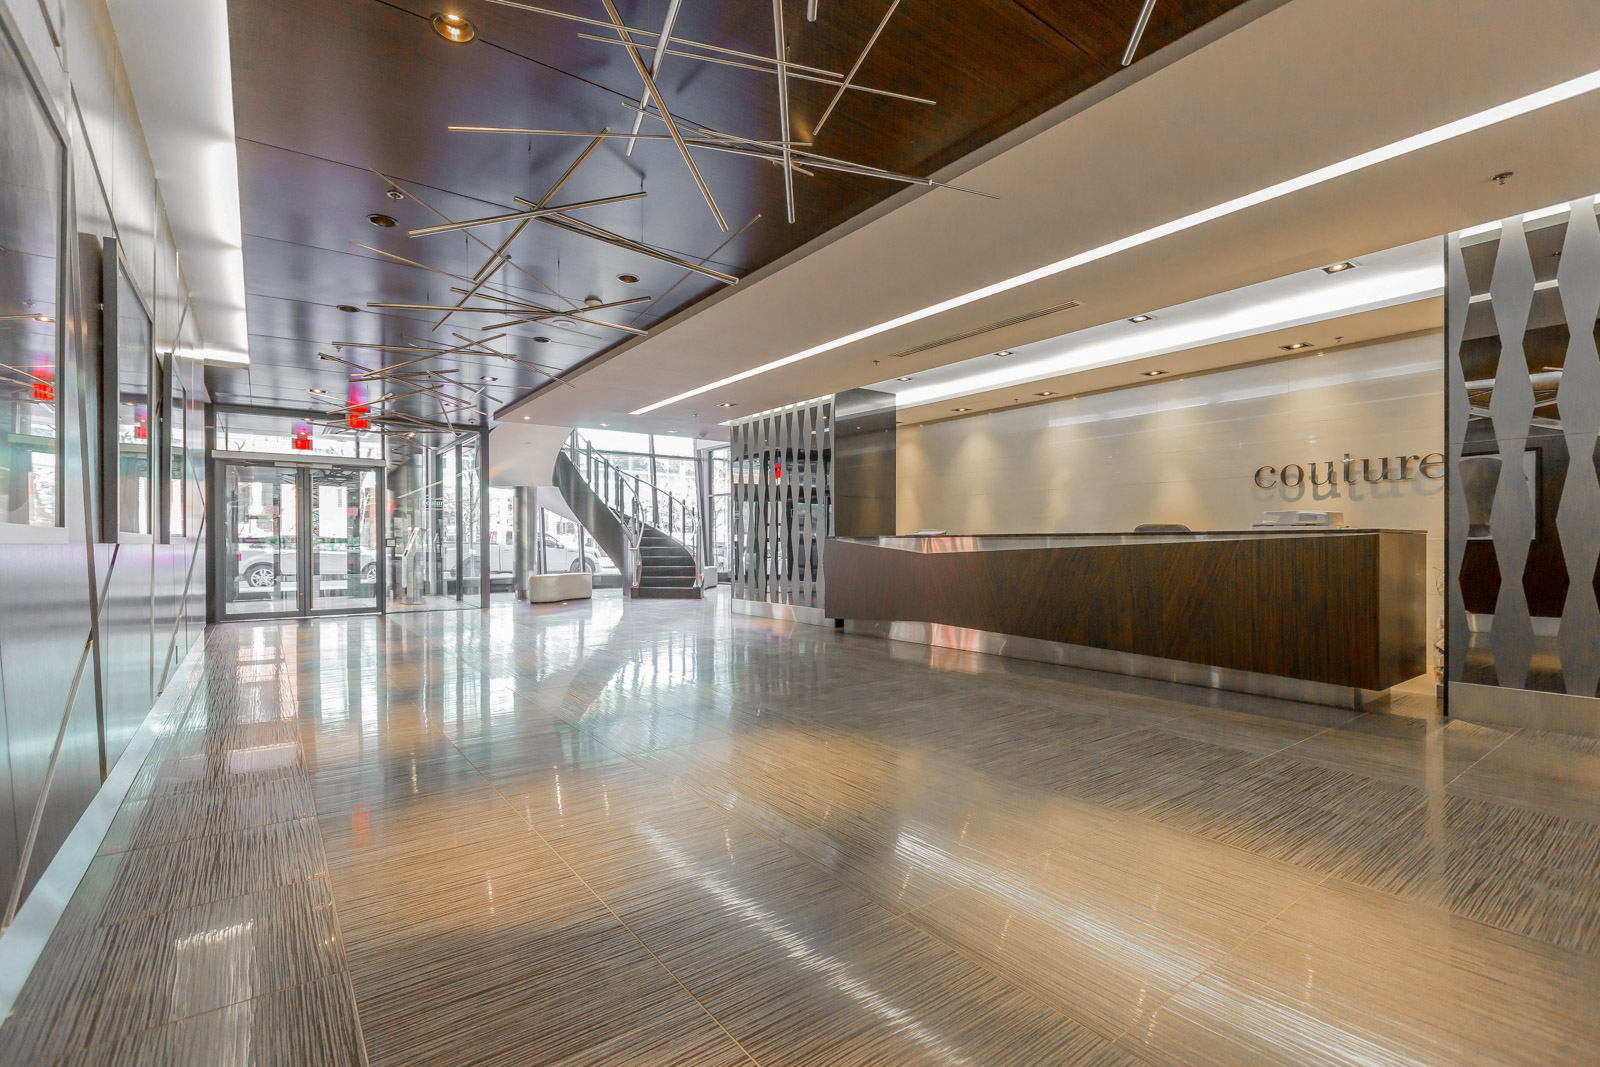 Photo of 28 Ted Rogers Way lobby. It looks so beautiful and artistic.